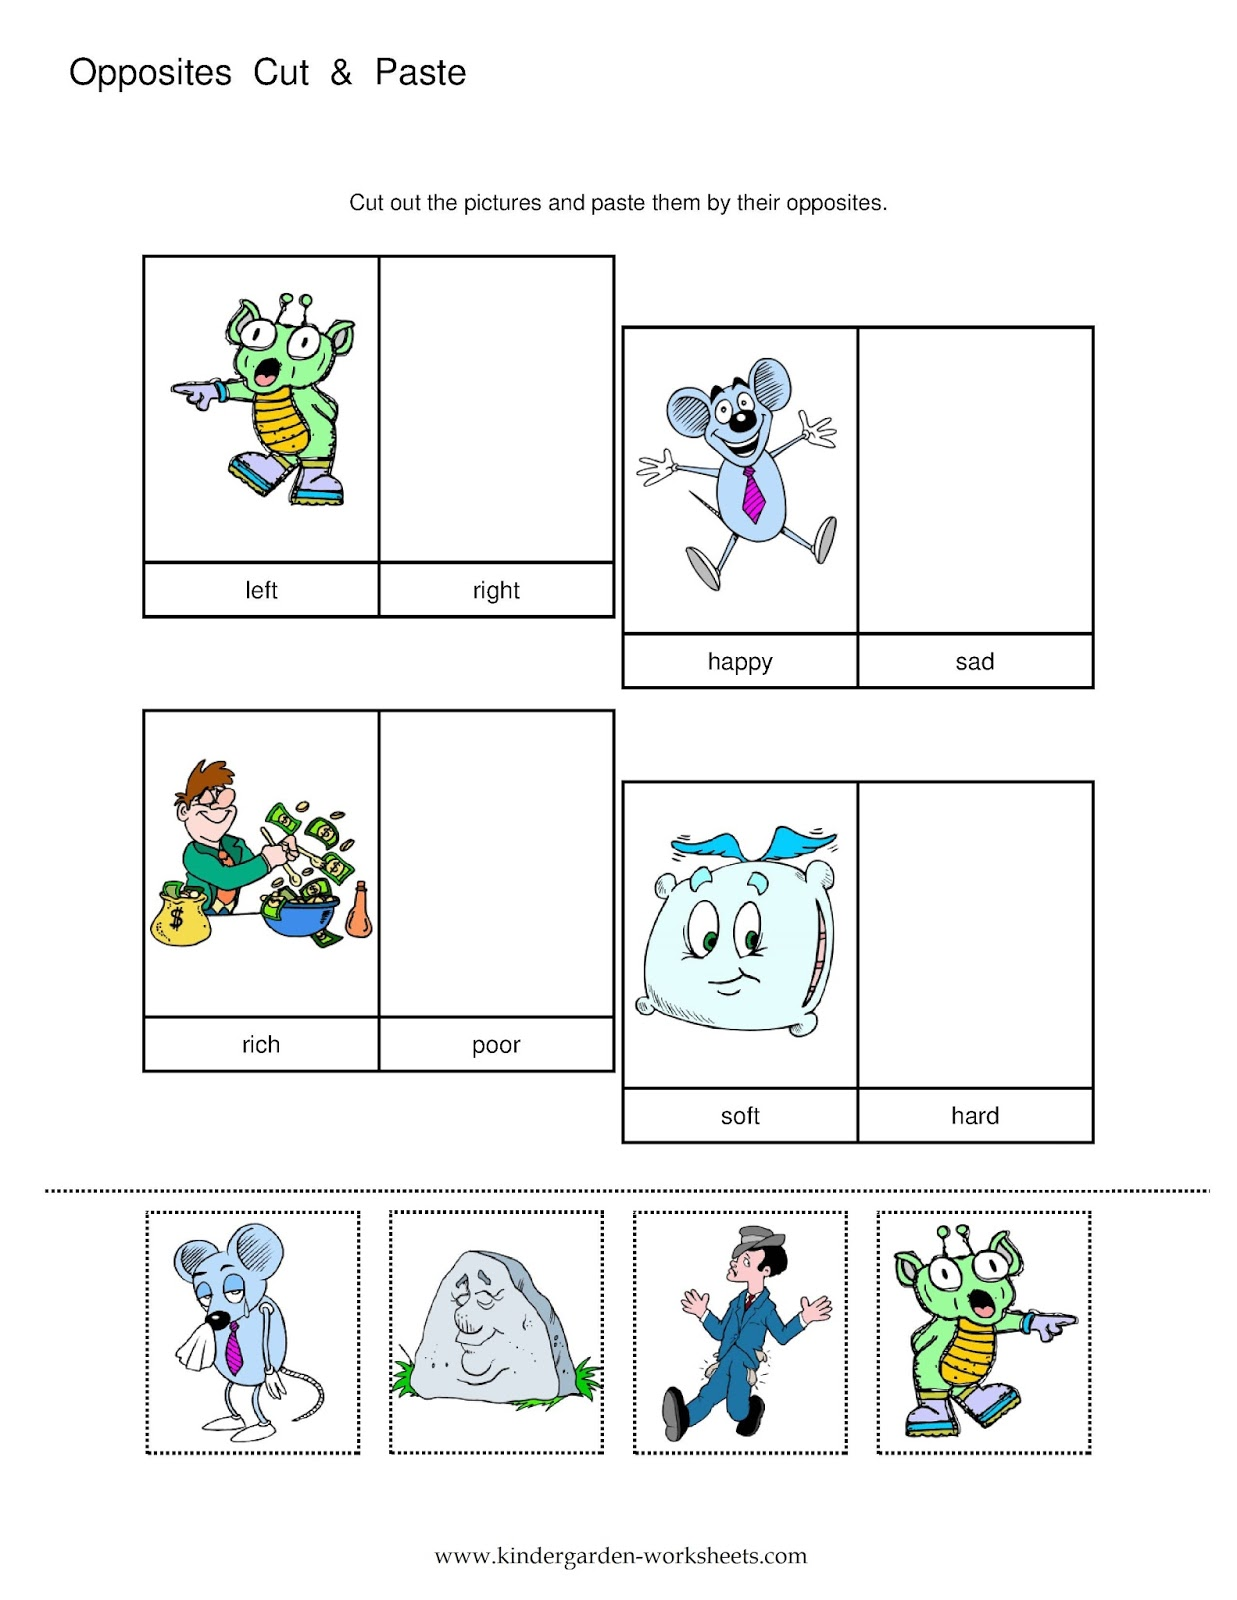 Worksheet Opposite Worksheets Preschool opposites worksheet kindergarten free printable opposite worksheets words